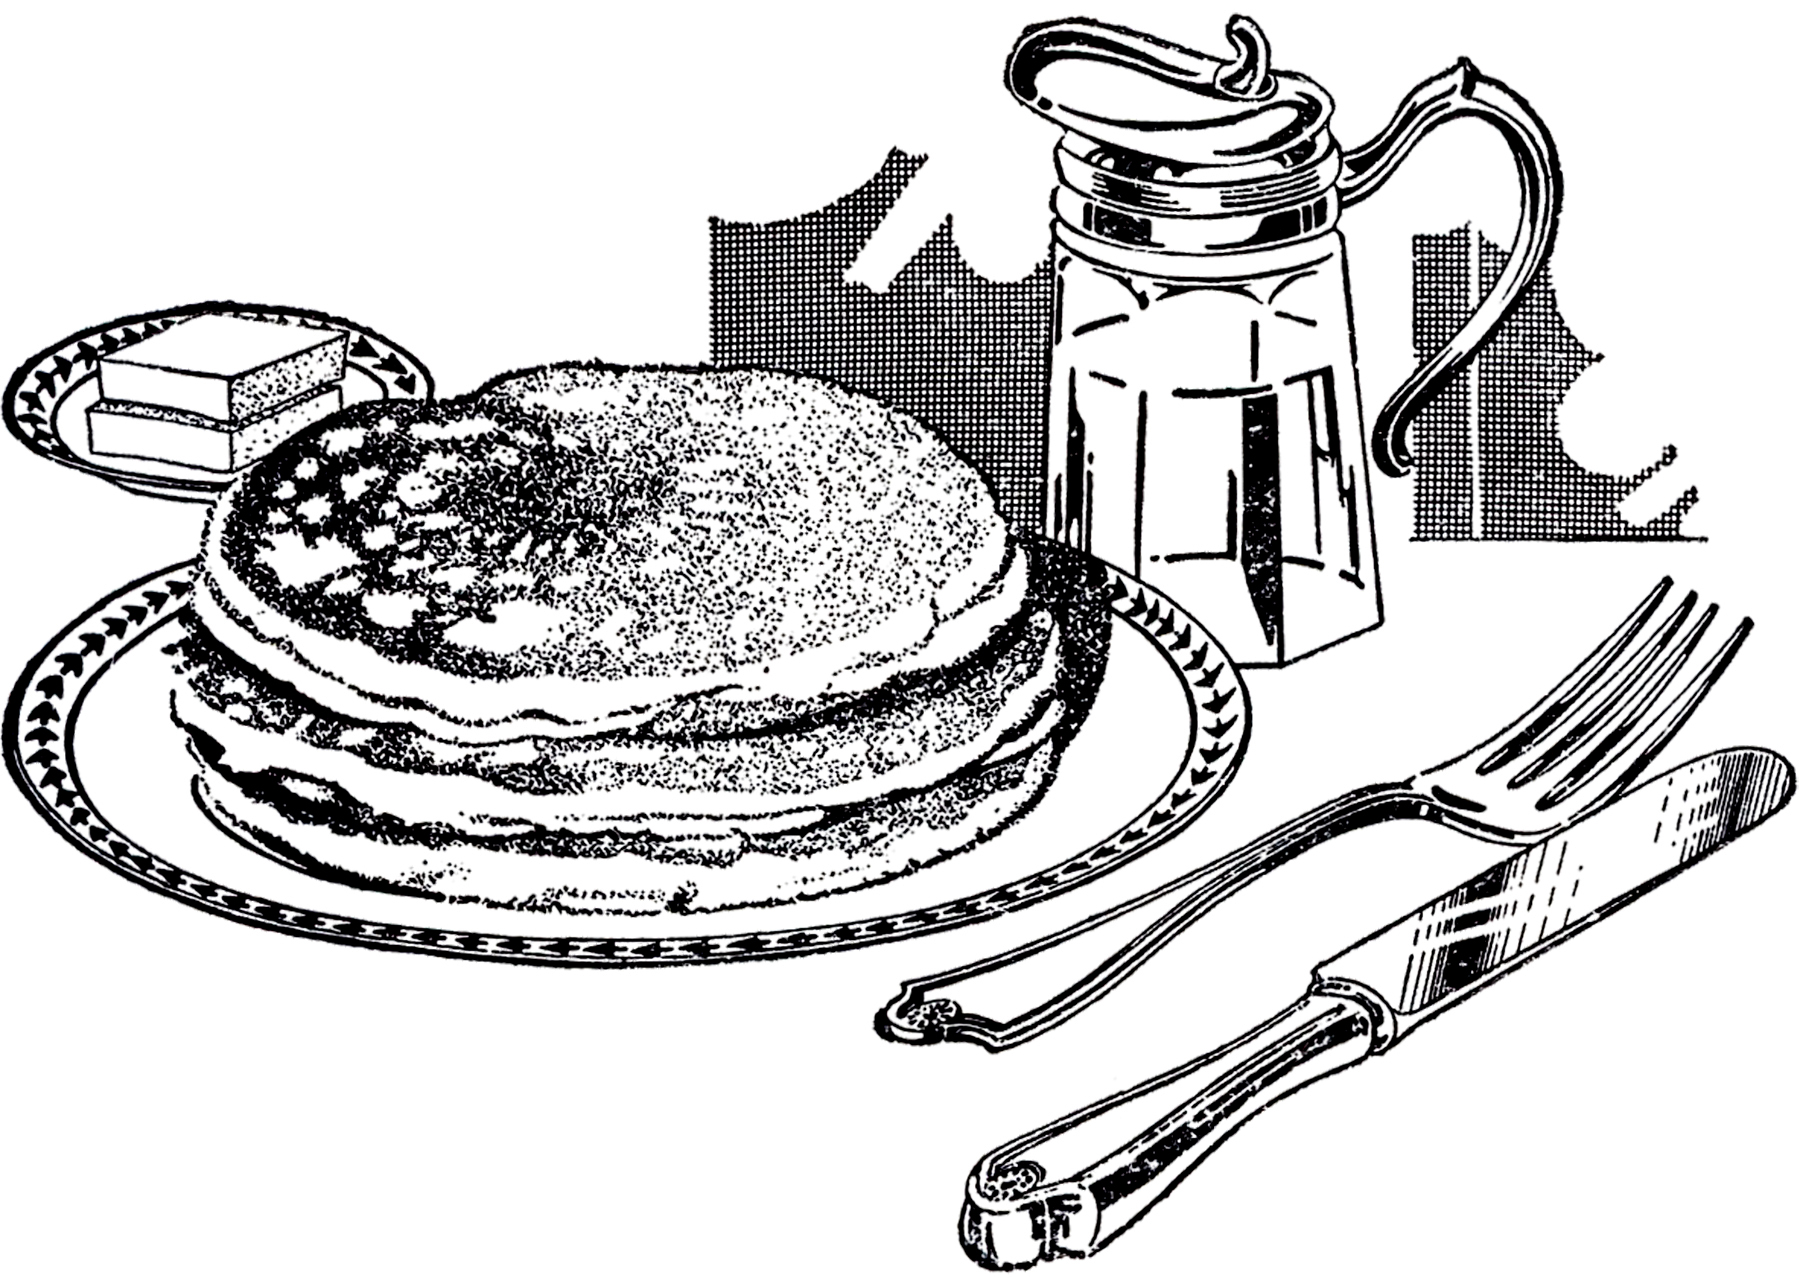 Pancakes clipart black and white clip art transparent Free Pancake Clipart Black And White, Download Free Clip Art ... clip art transparent